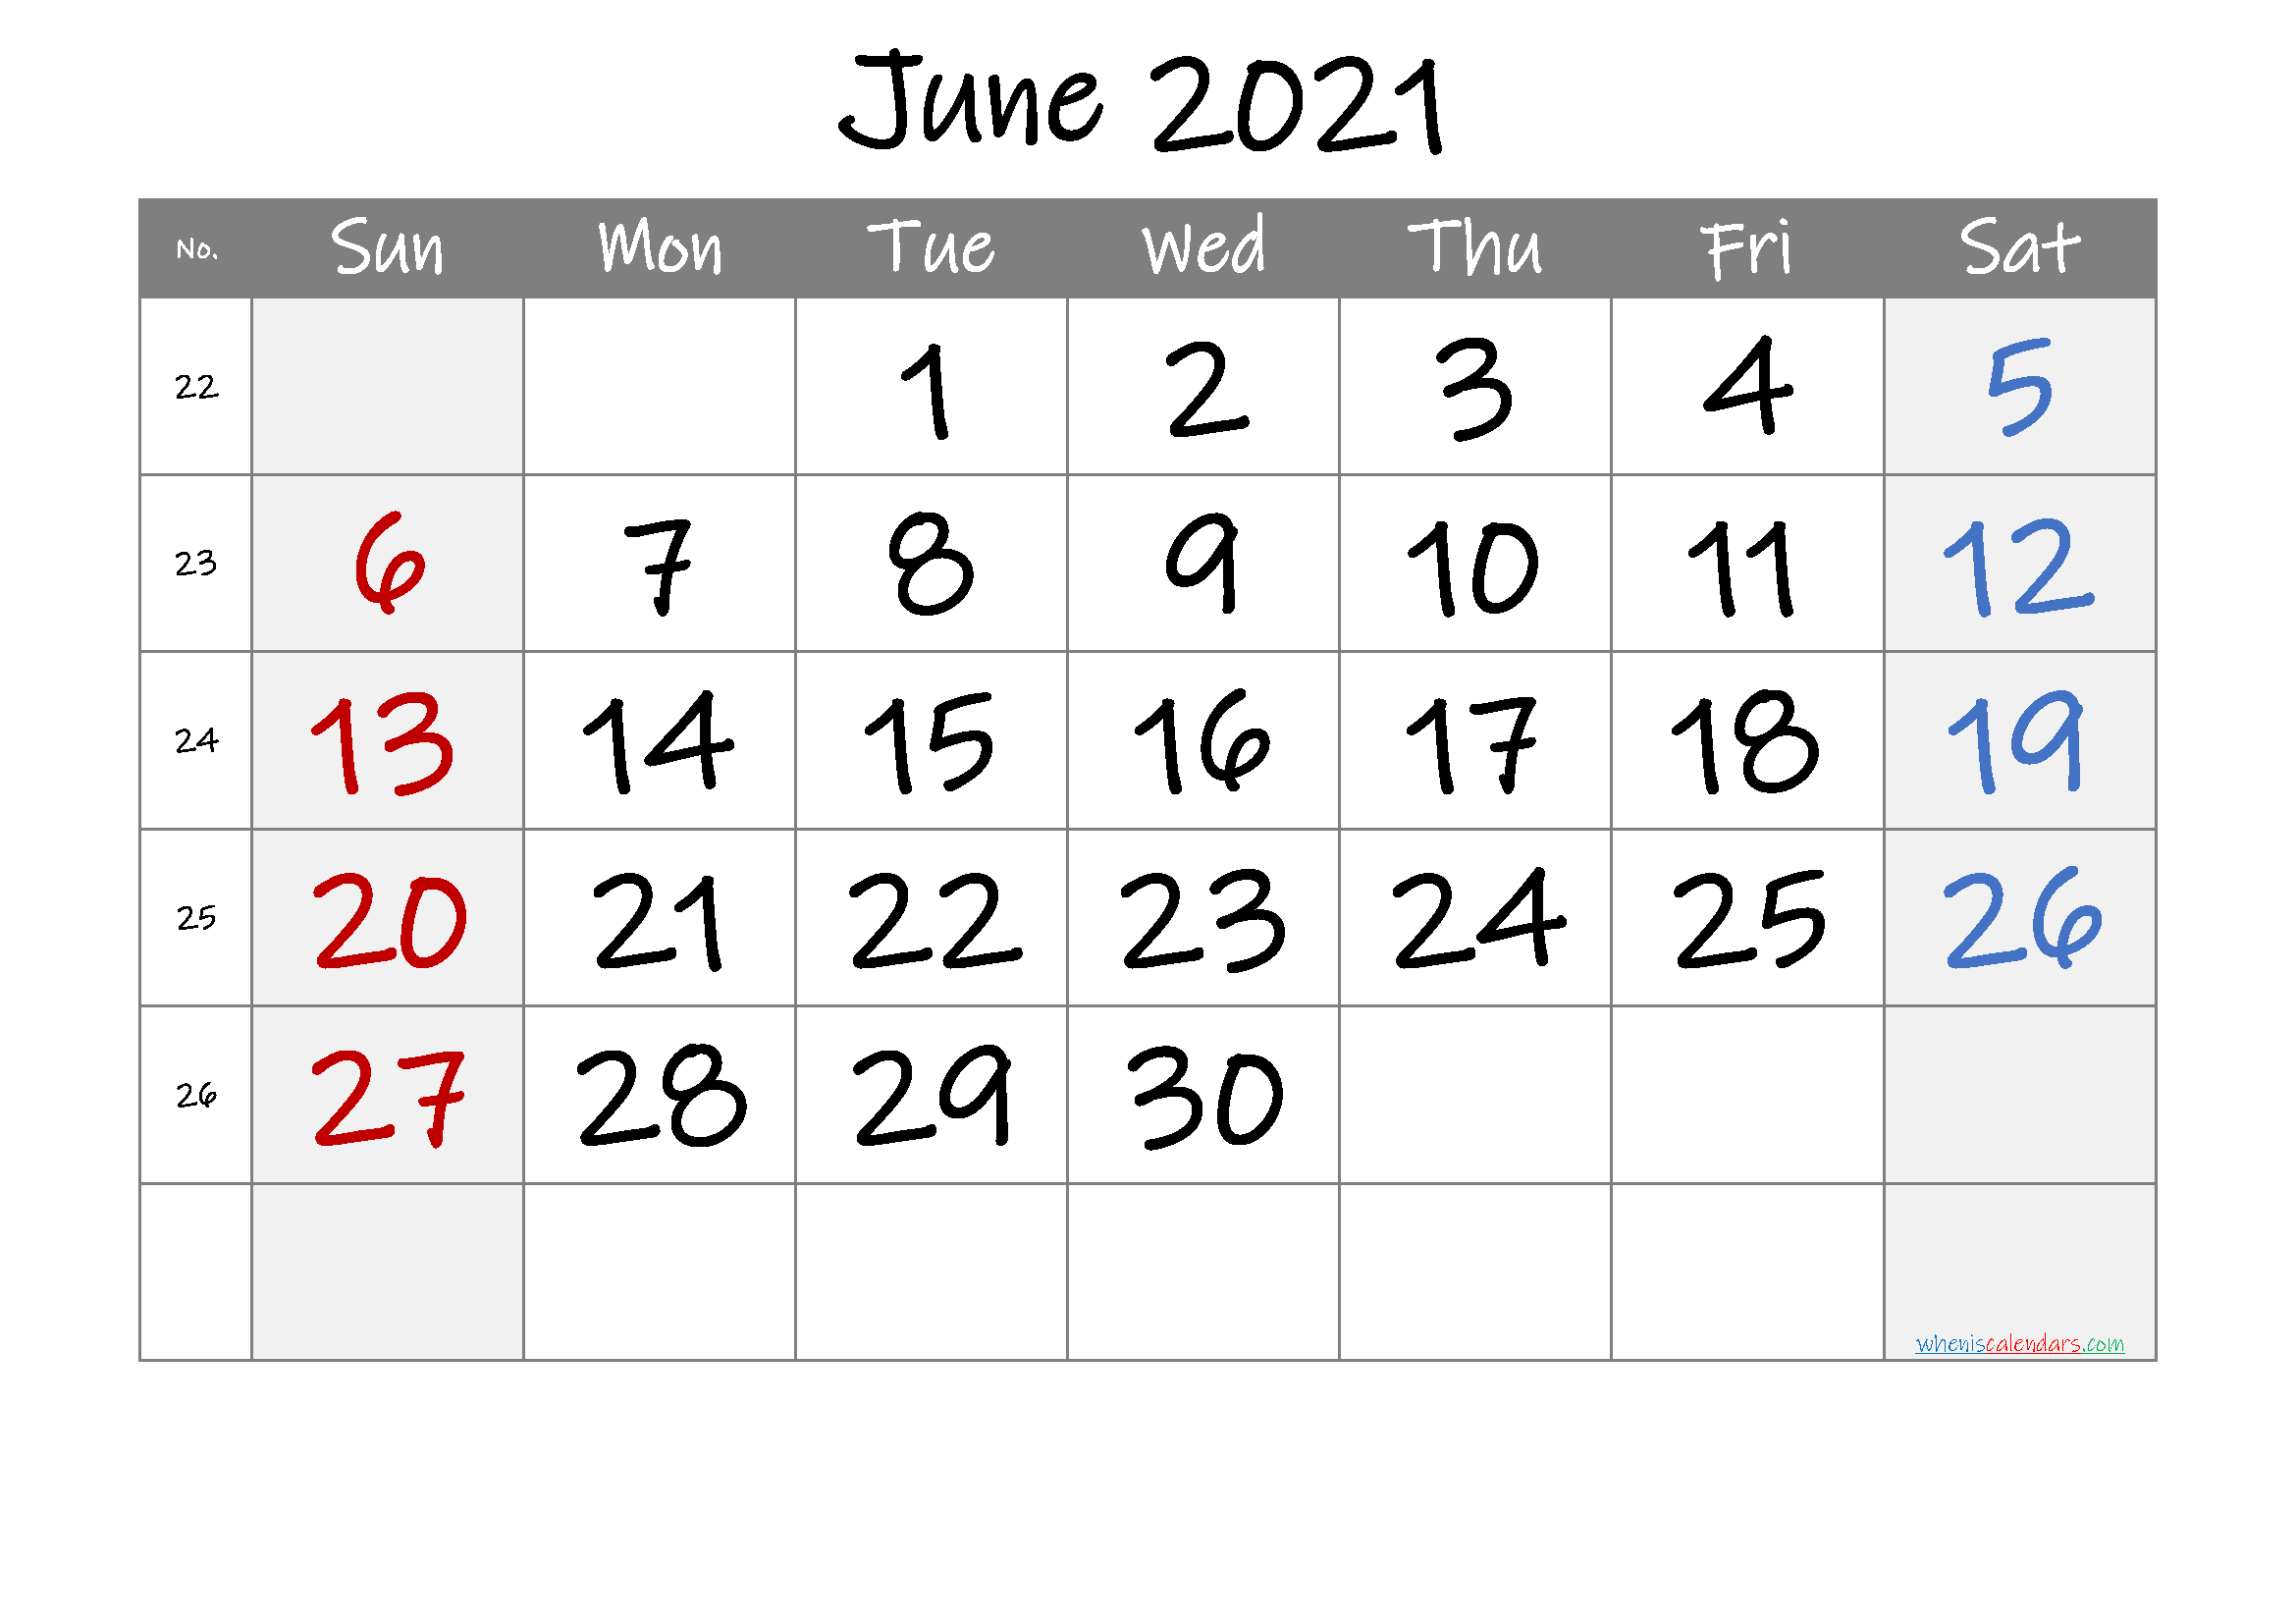 June 2021 Printable Calendar with Week Numbers